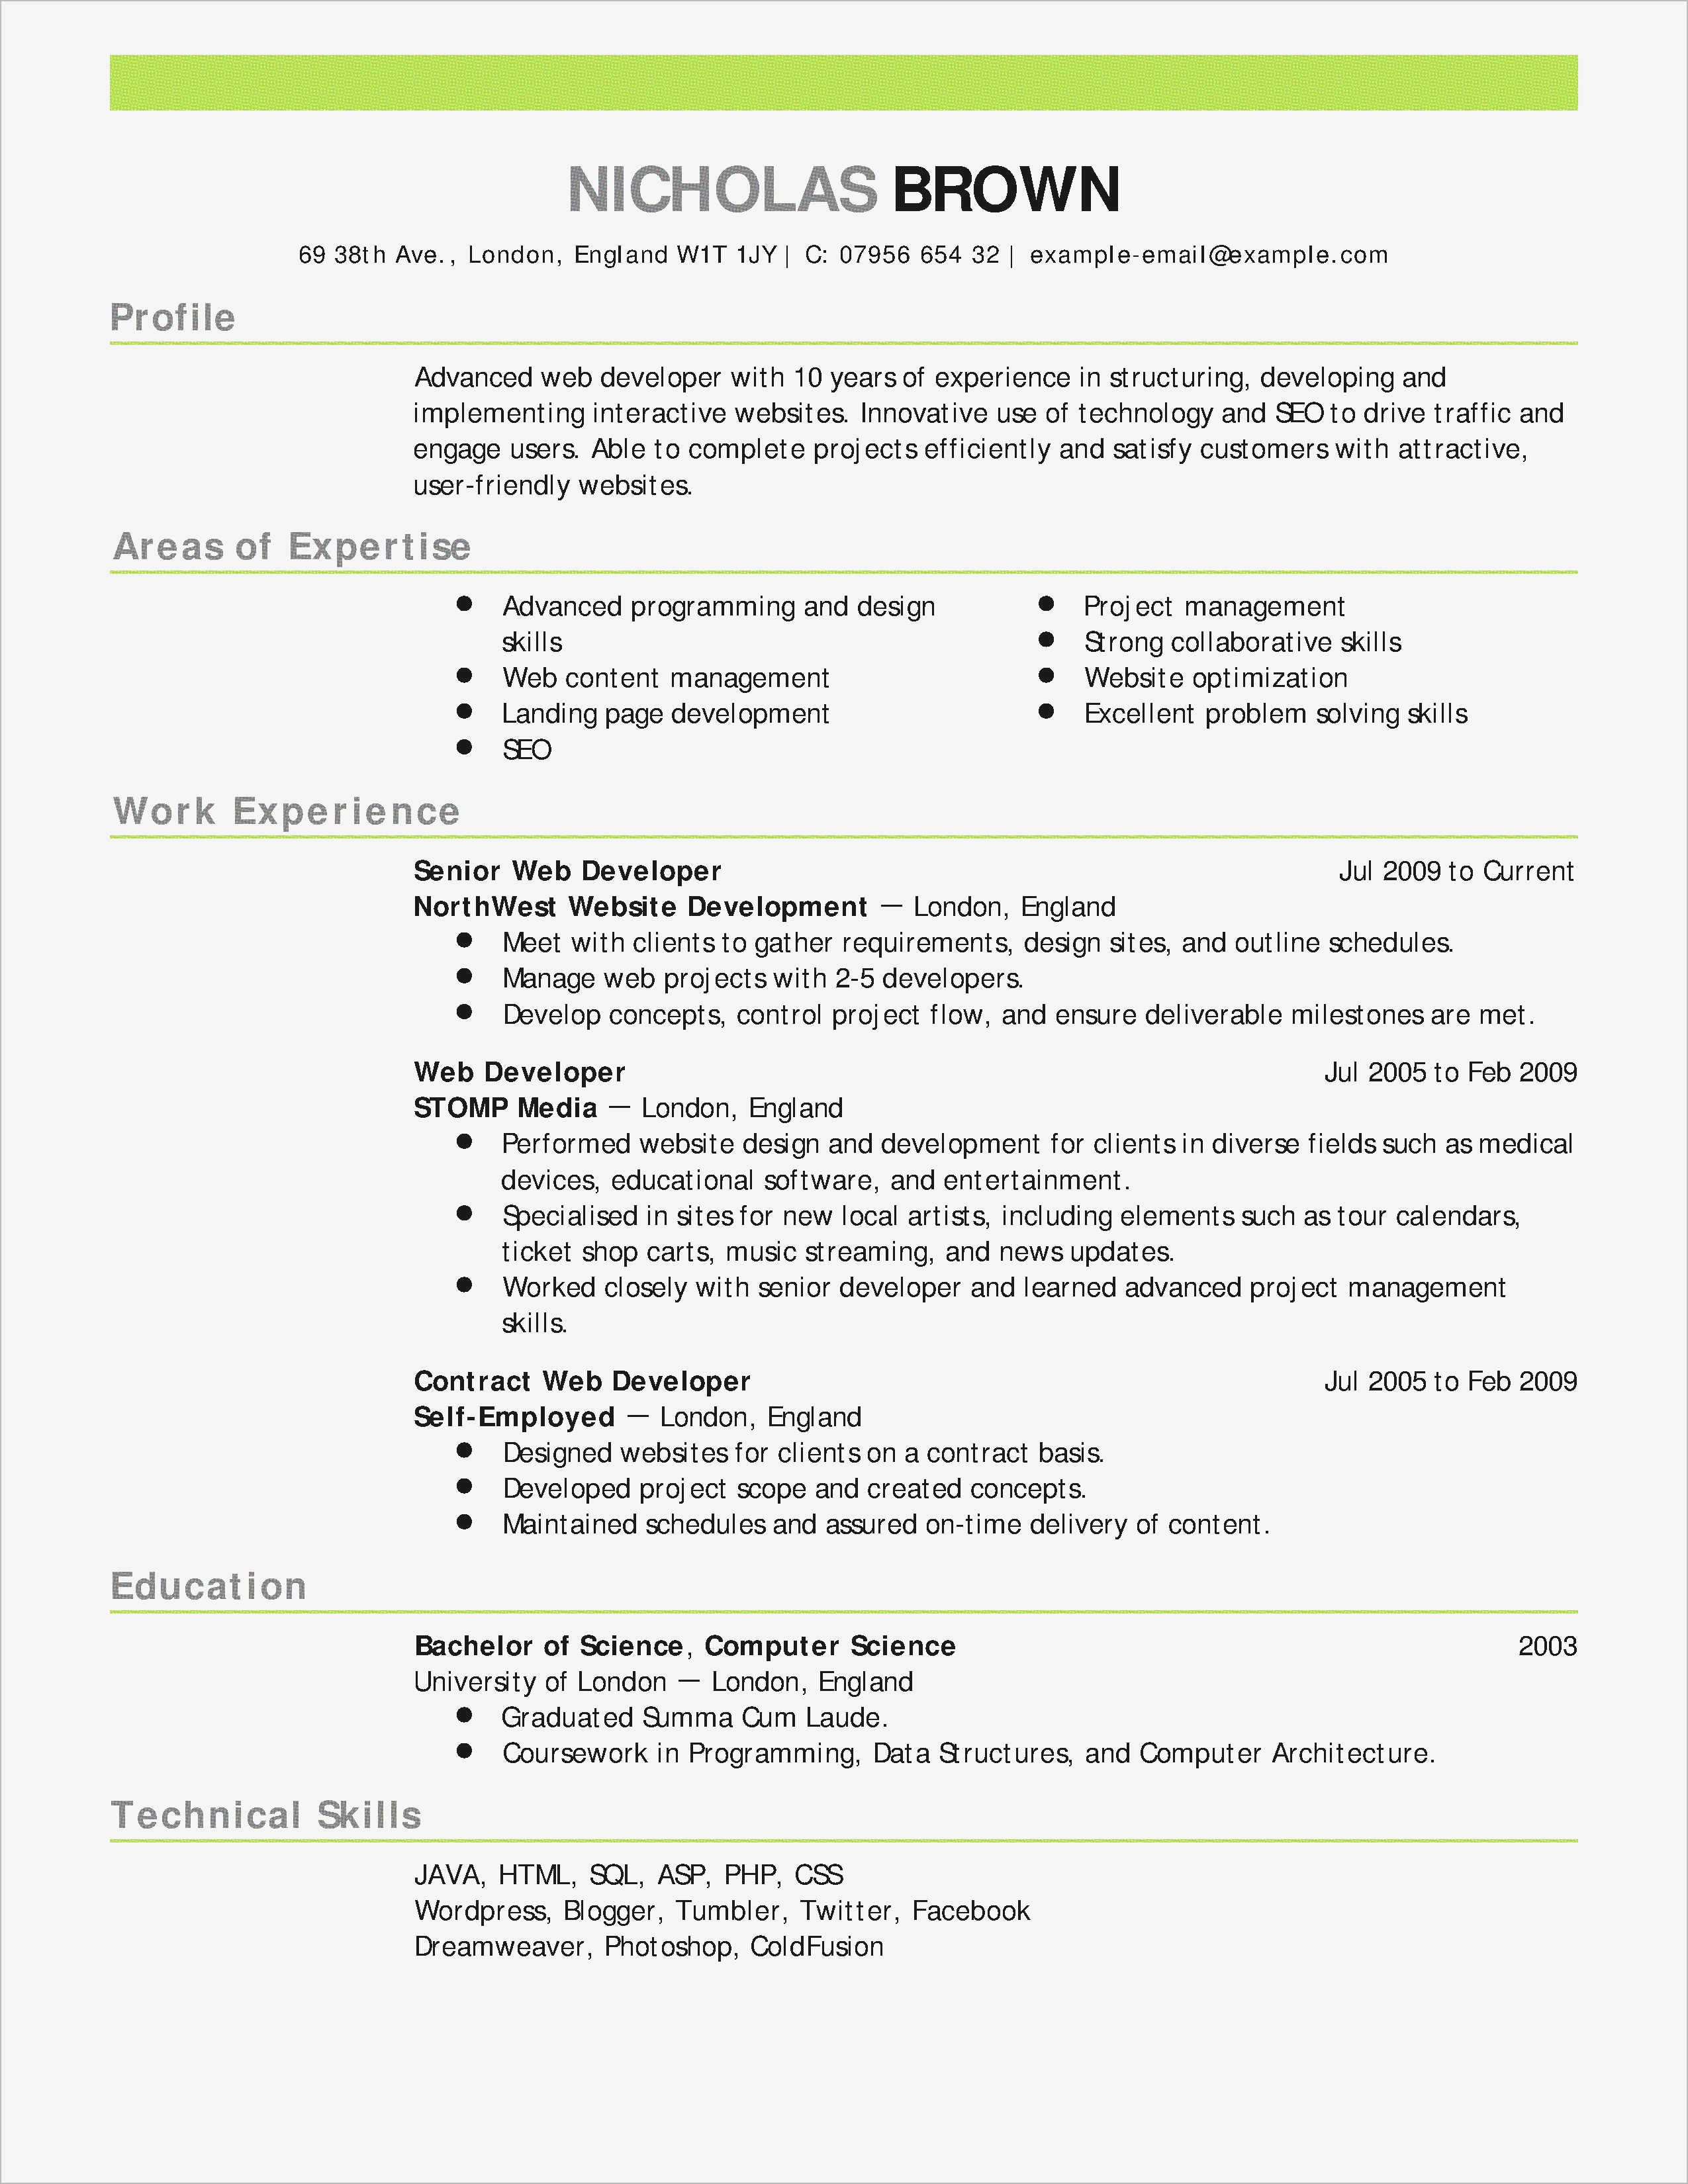 Cover Letter for Teaching Job Template - Cover Letter for Teaching Position Pdf format